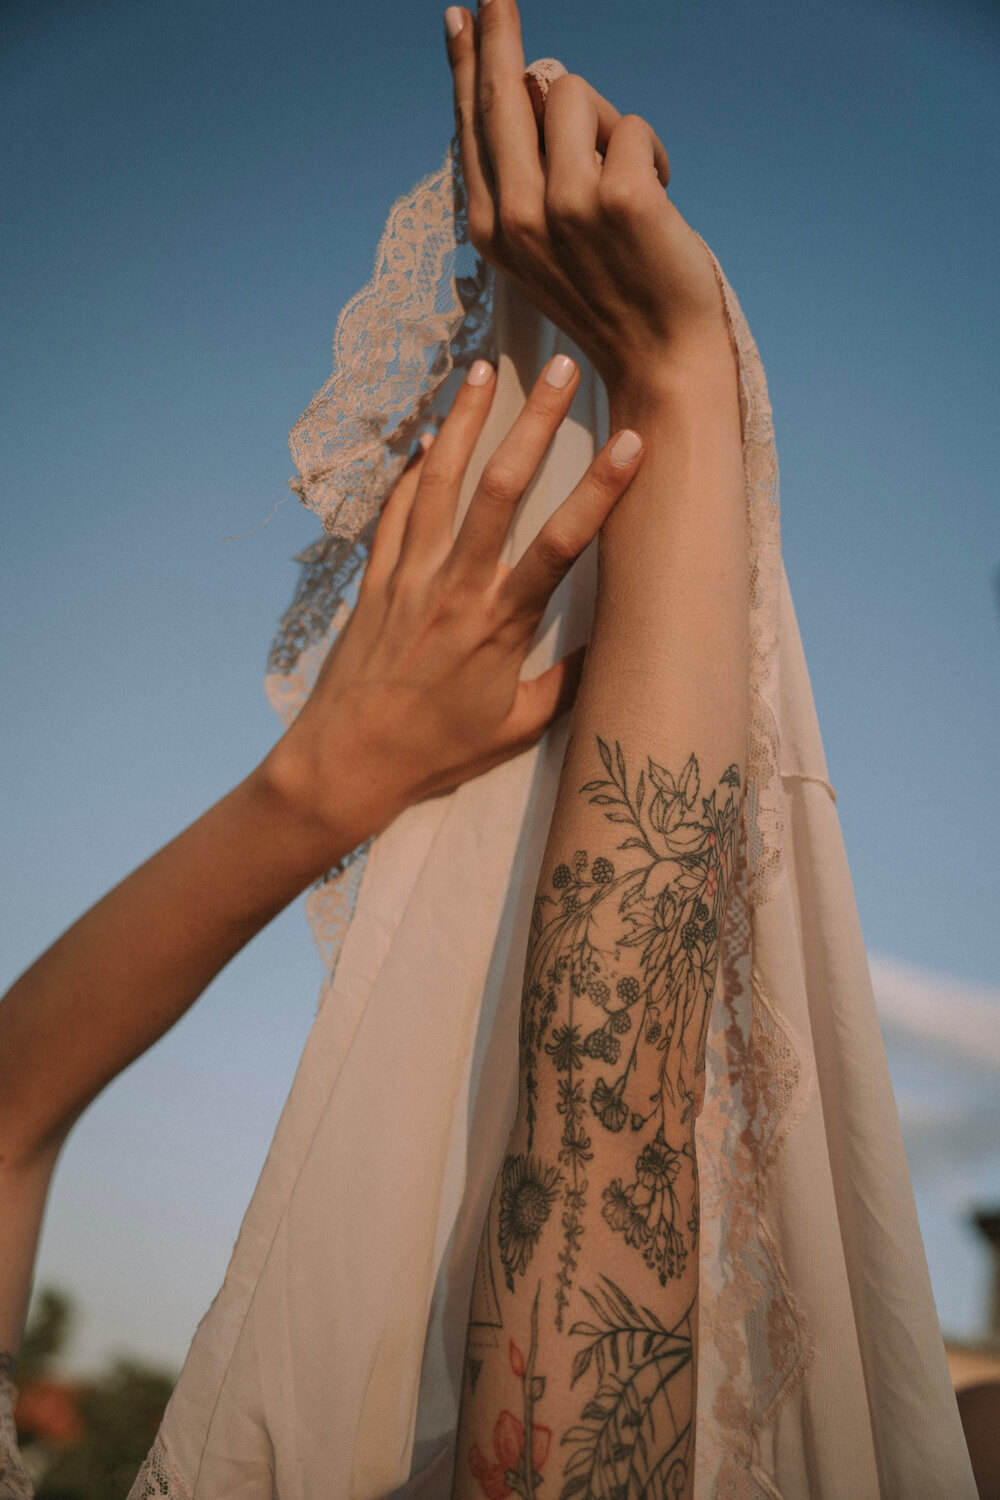 Hands with tattoos and embroided fabric in Berlin by photographer Krystsina Shyla